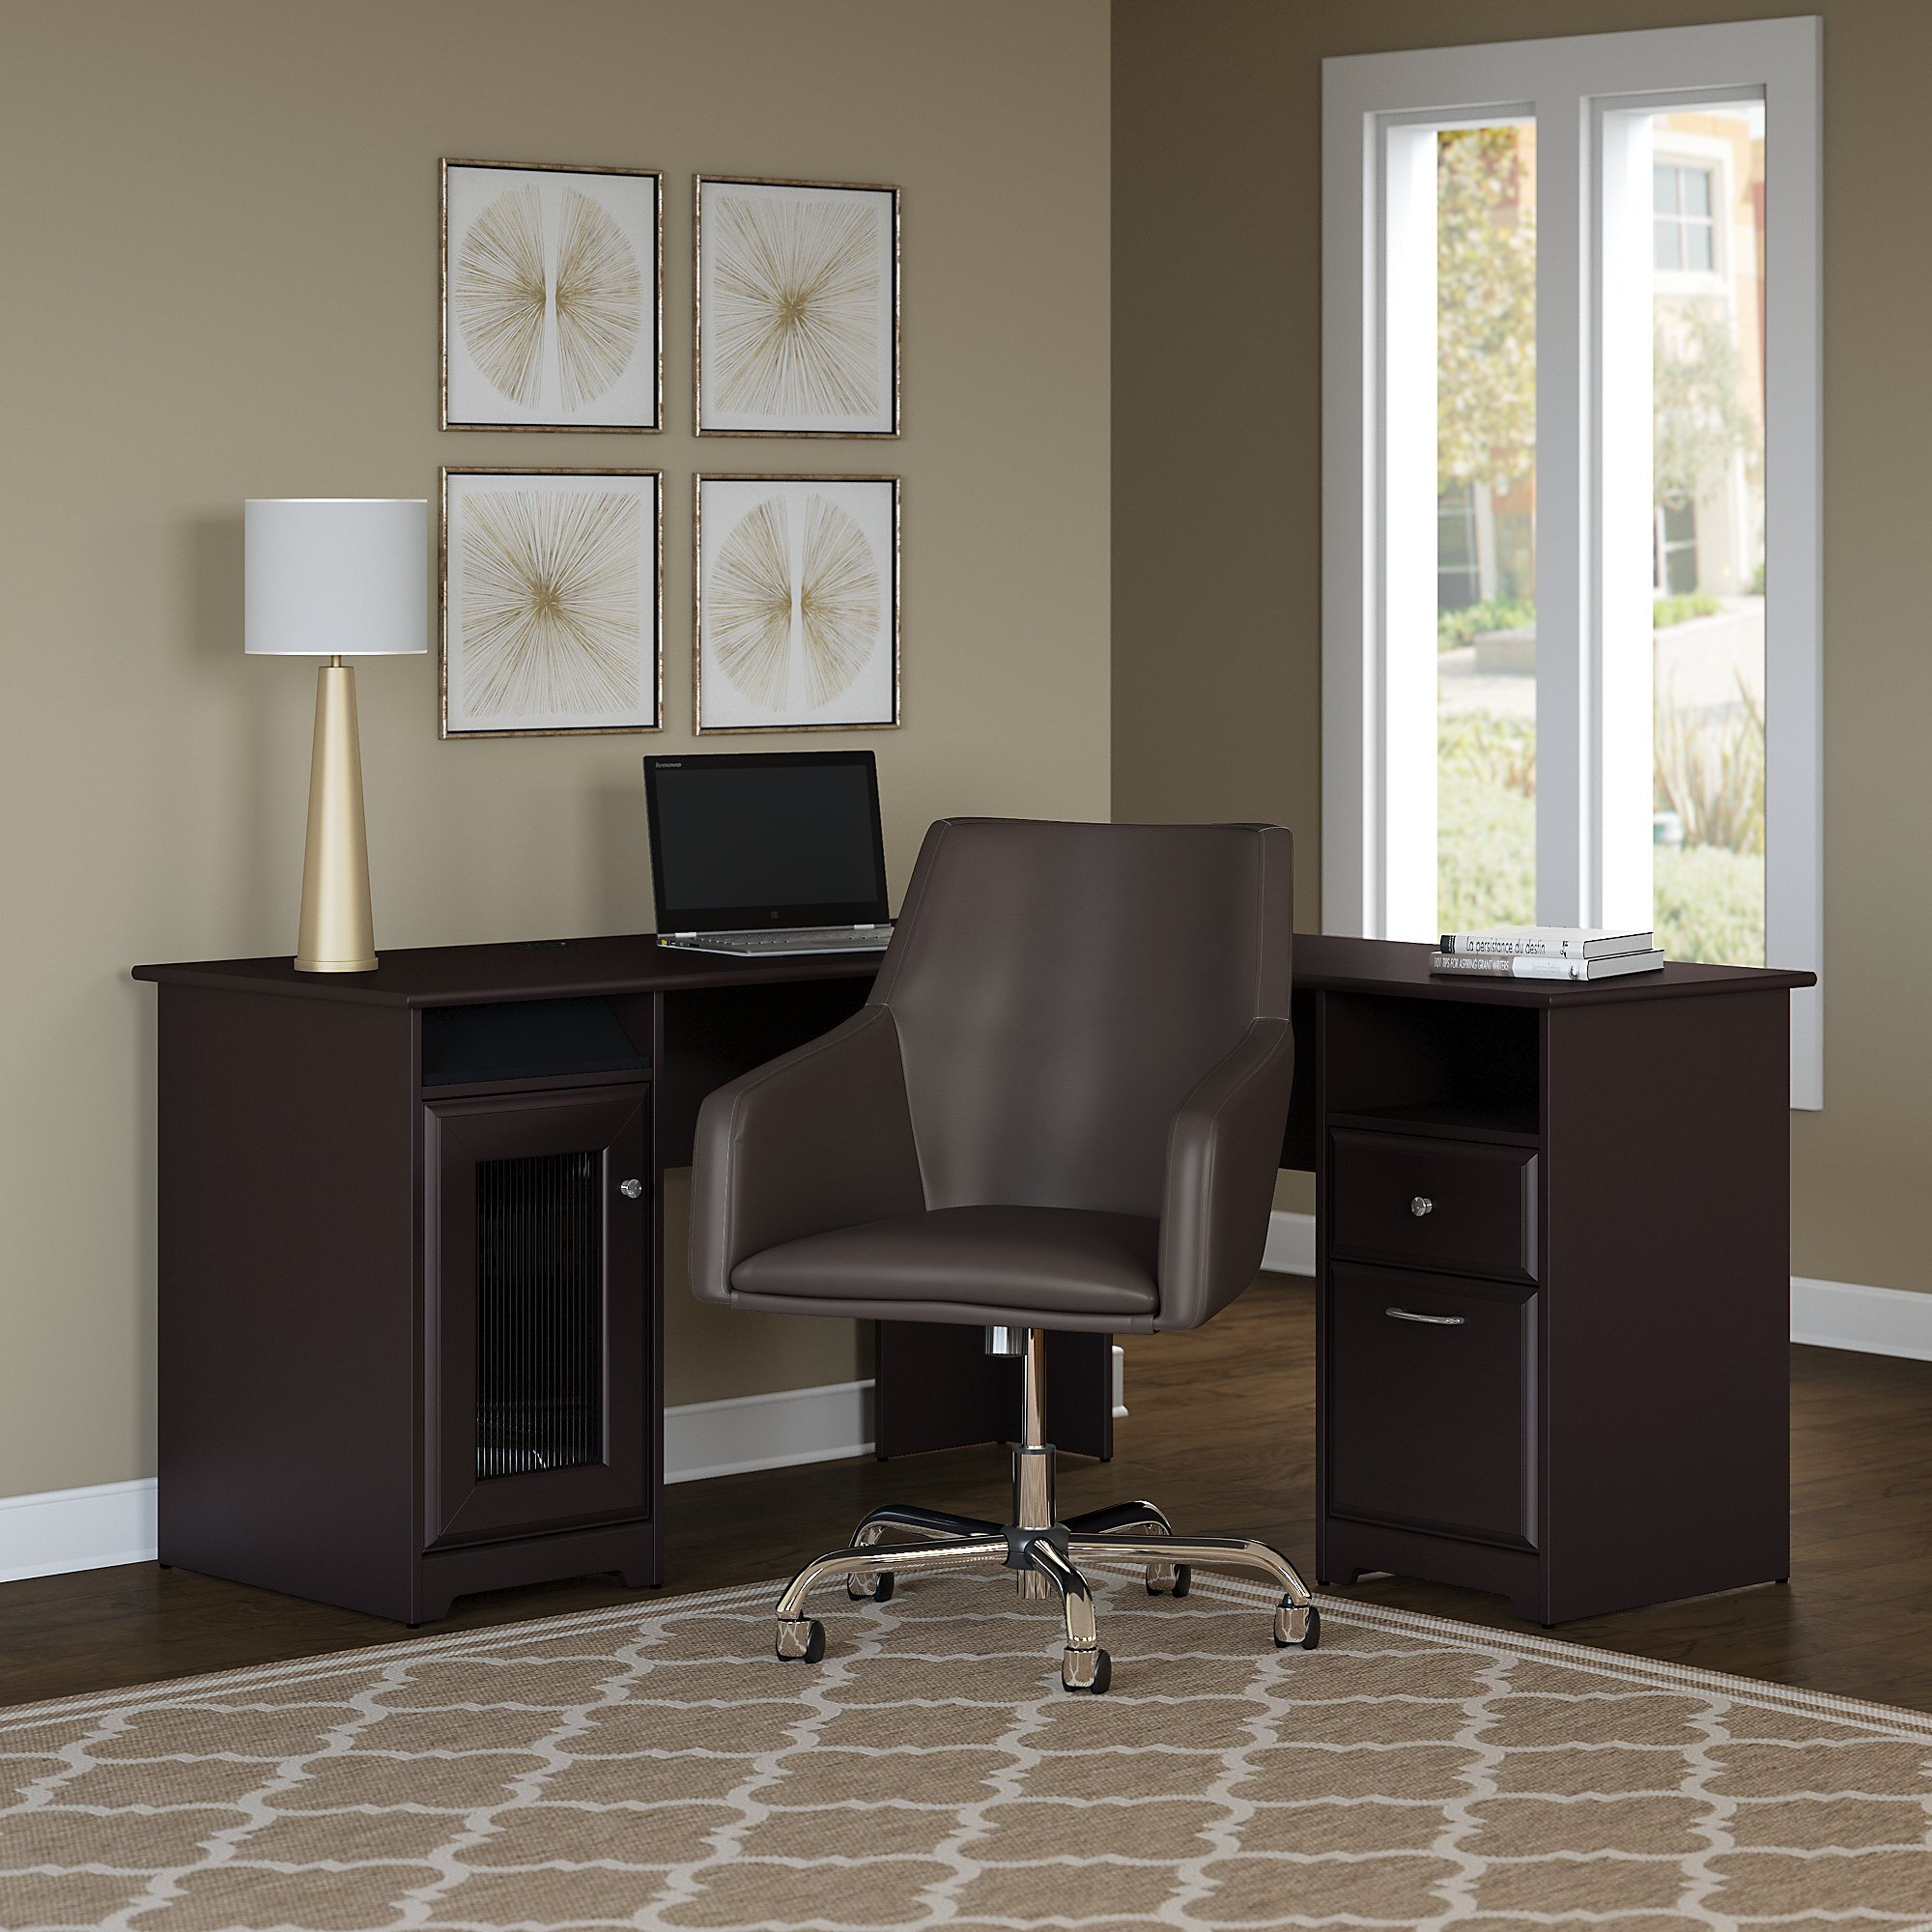 Gray Modern & Contemporary Office Furniture Sets You'll Love in